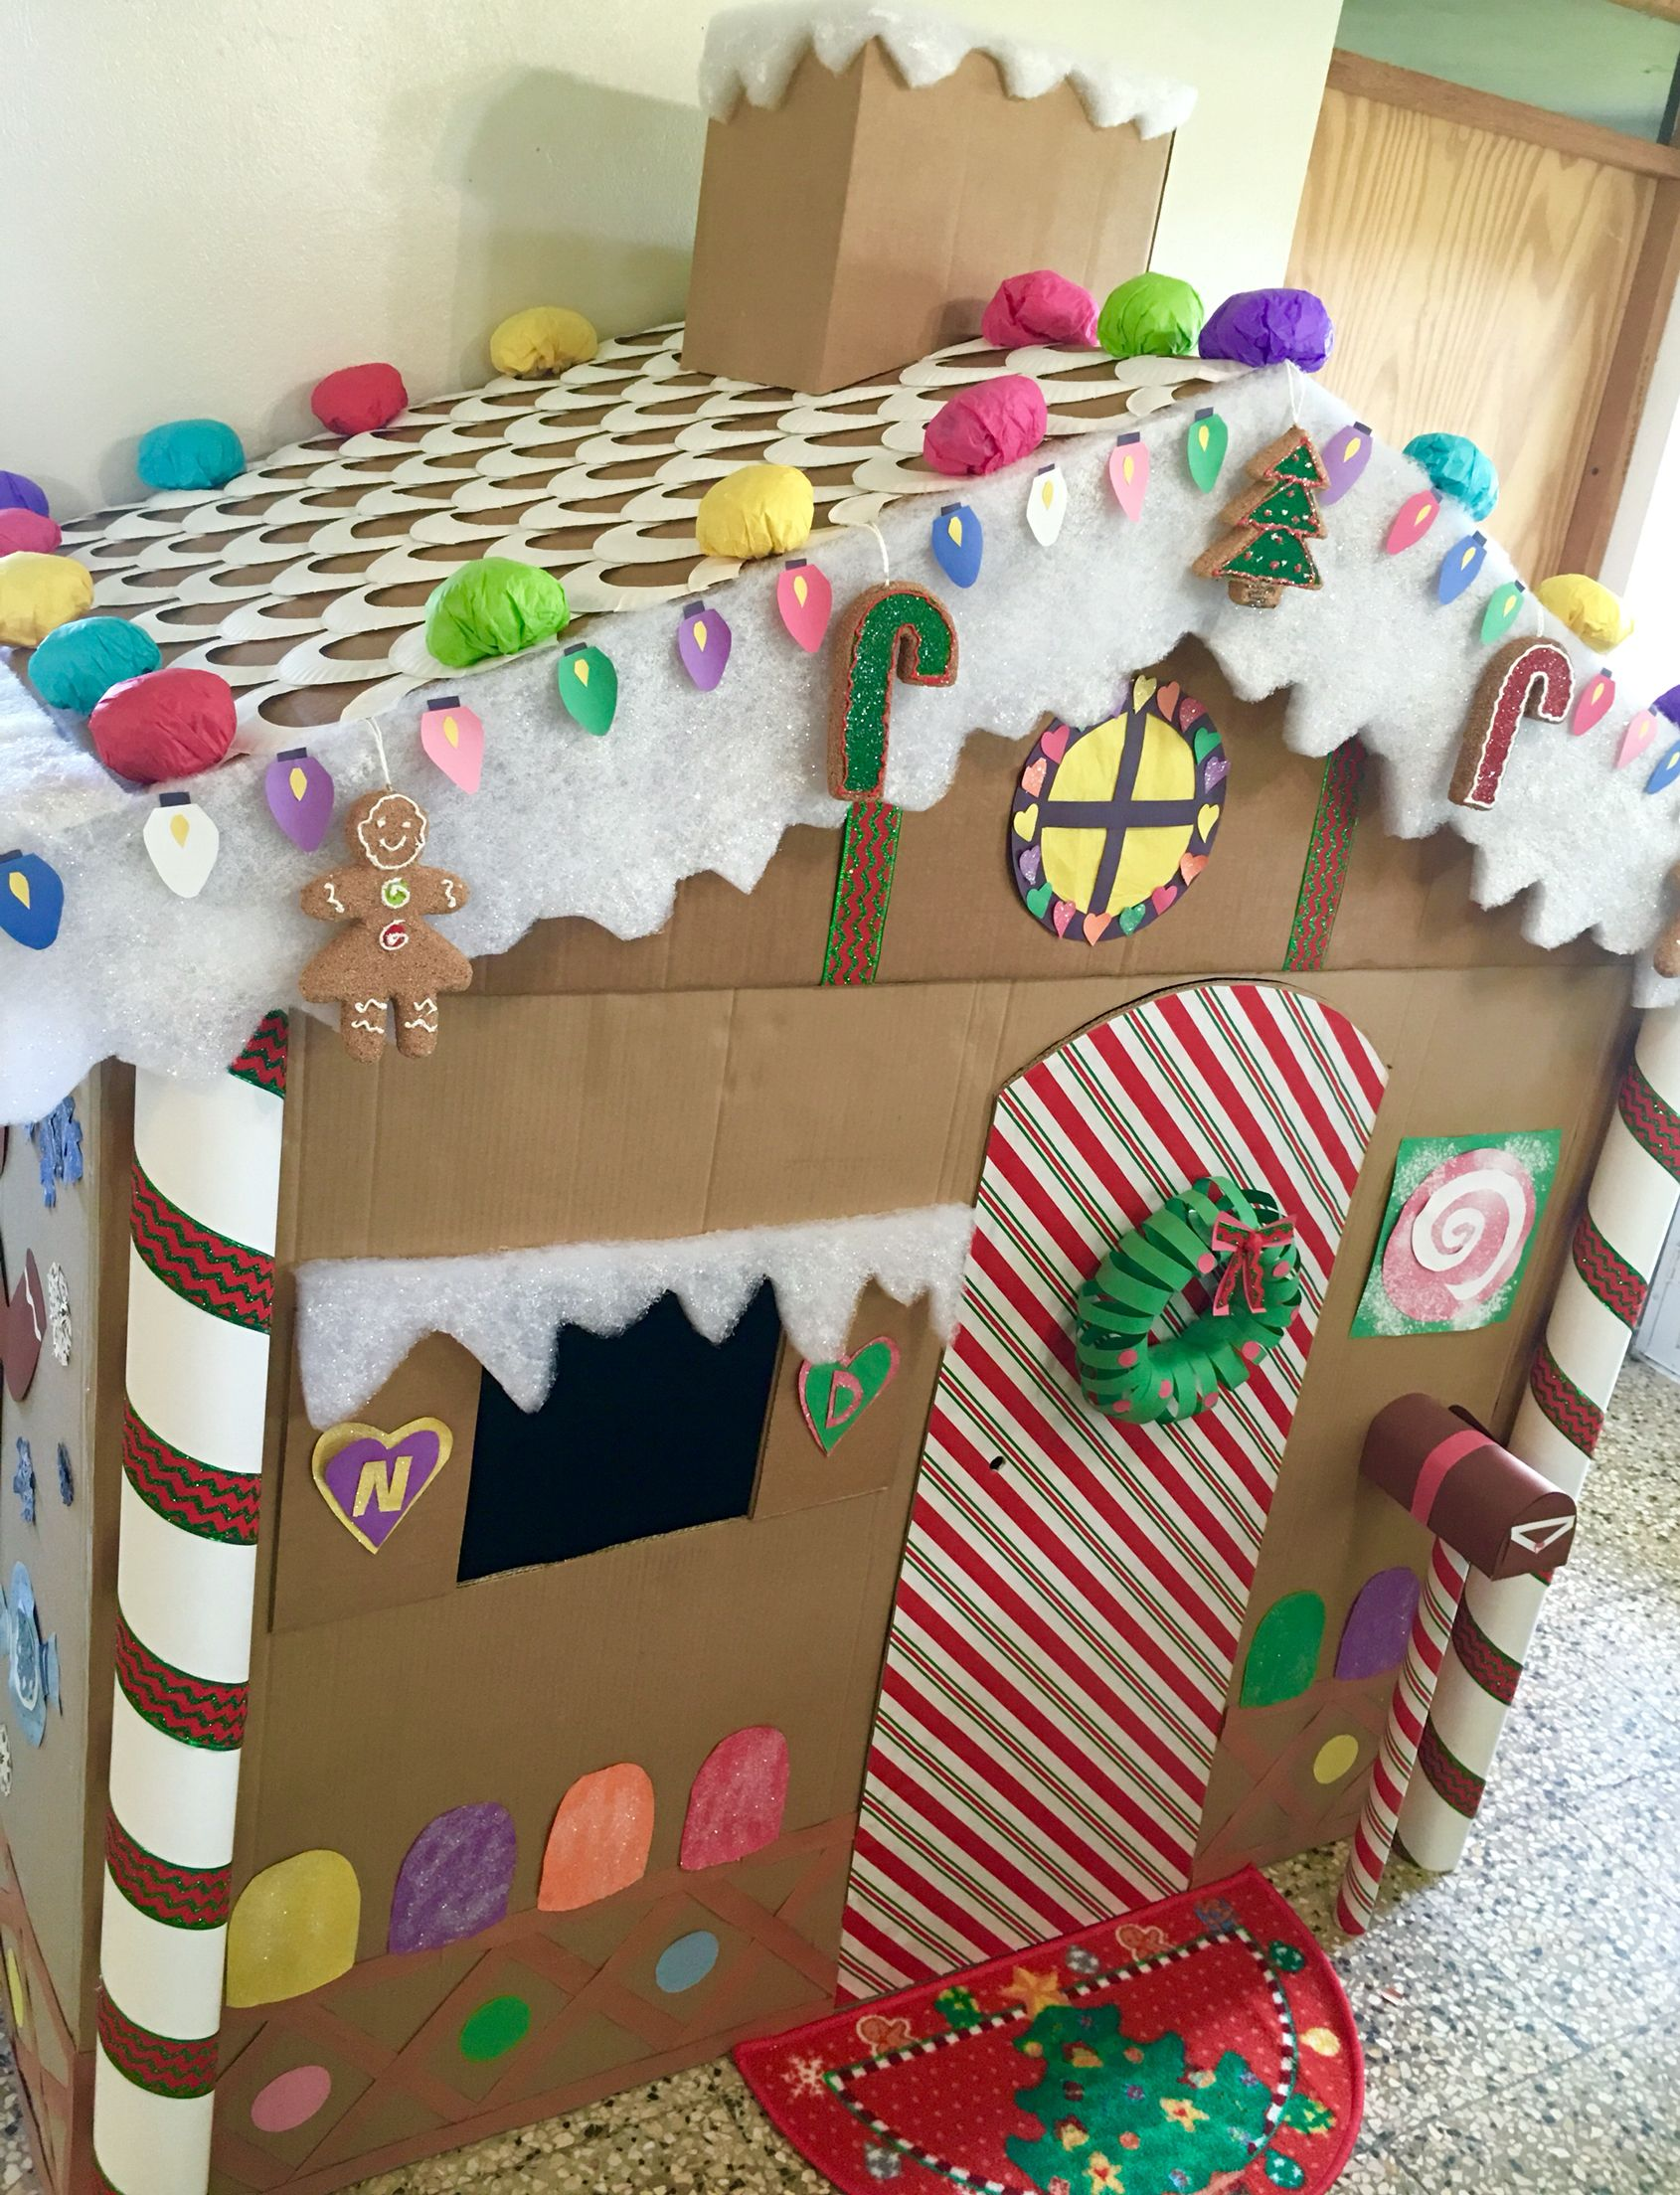 Remarkable Giant Gingerbread House Fun Ideas Christmas Download Free Architecture Designs Rallybritishbridgeorg